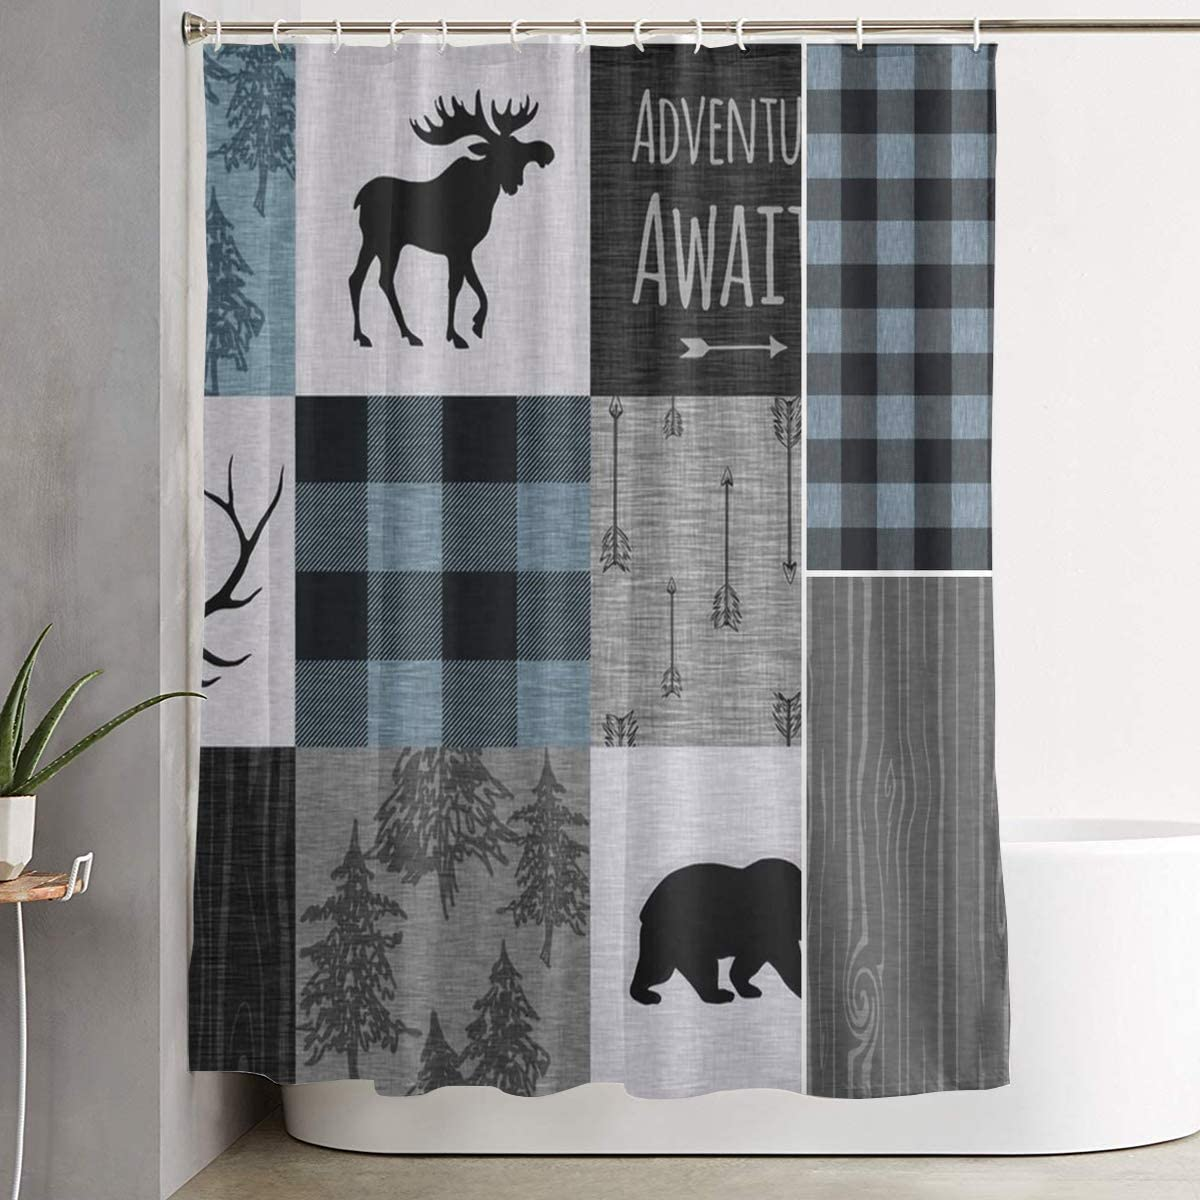 Carwayii Retro Rustic Lodge Bear Moose Deer Bath Curtain Polyester Quick Dry Shower Curtain Machine Washable Premium Bathroom Curtain Lightweight Bathroom Accessories for Home Bathroom Decor 72x72In